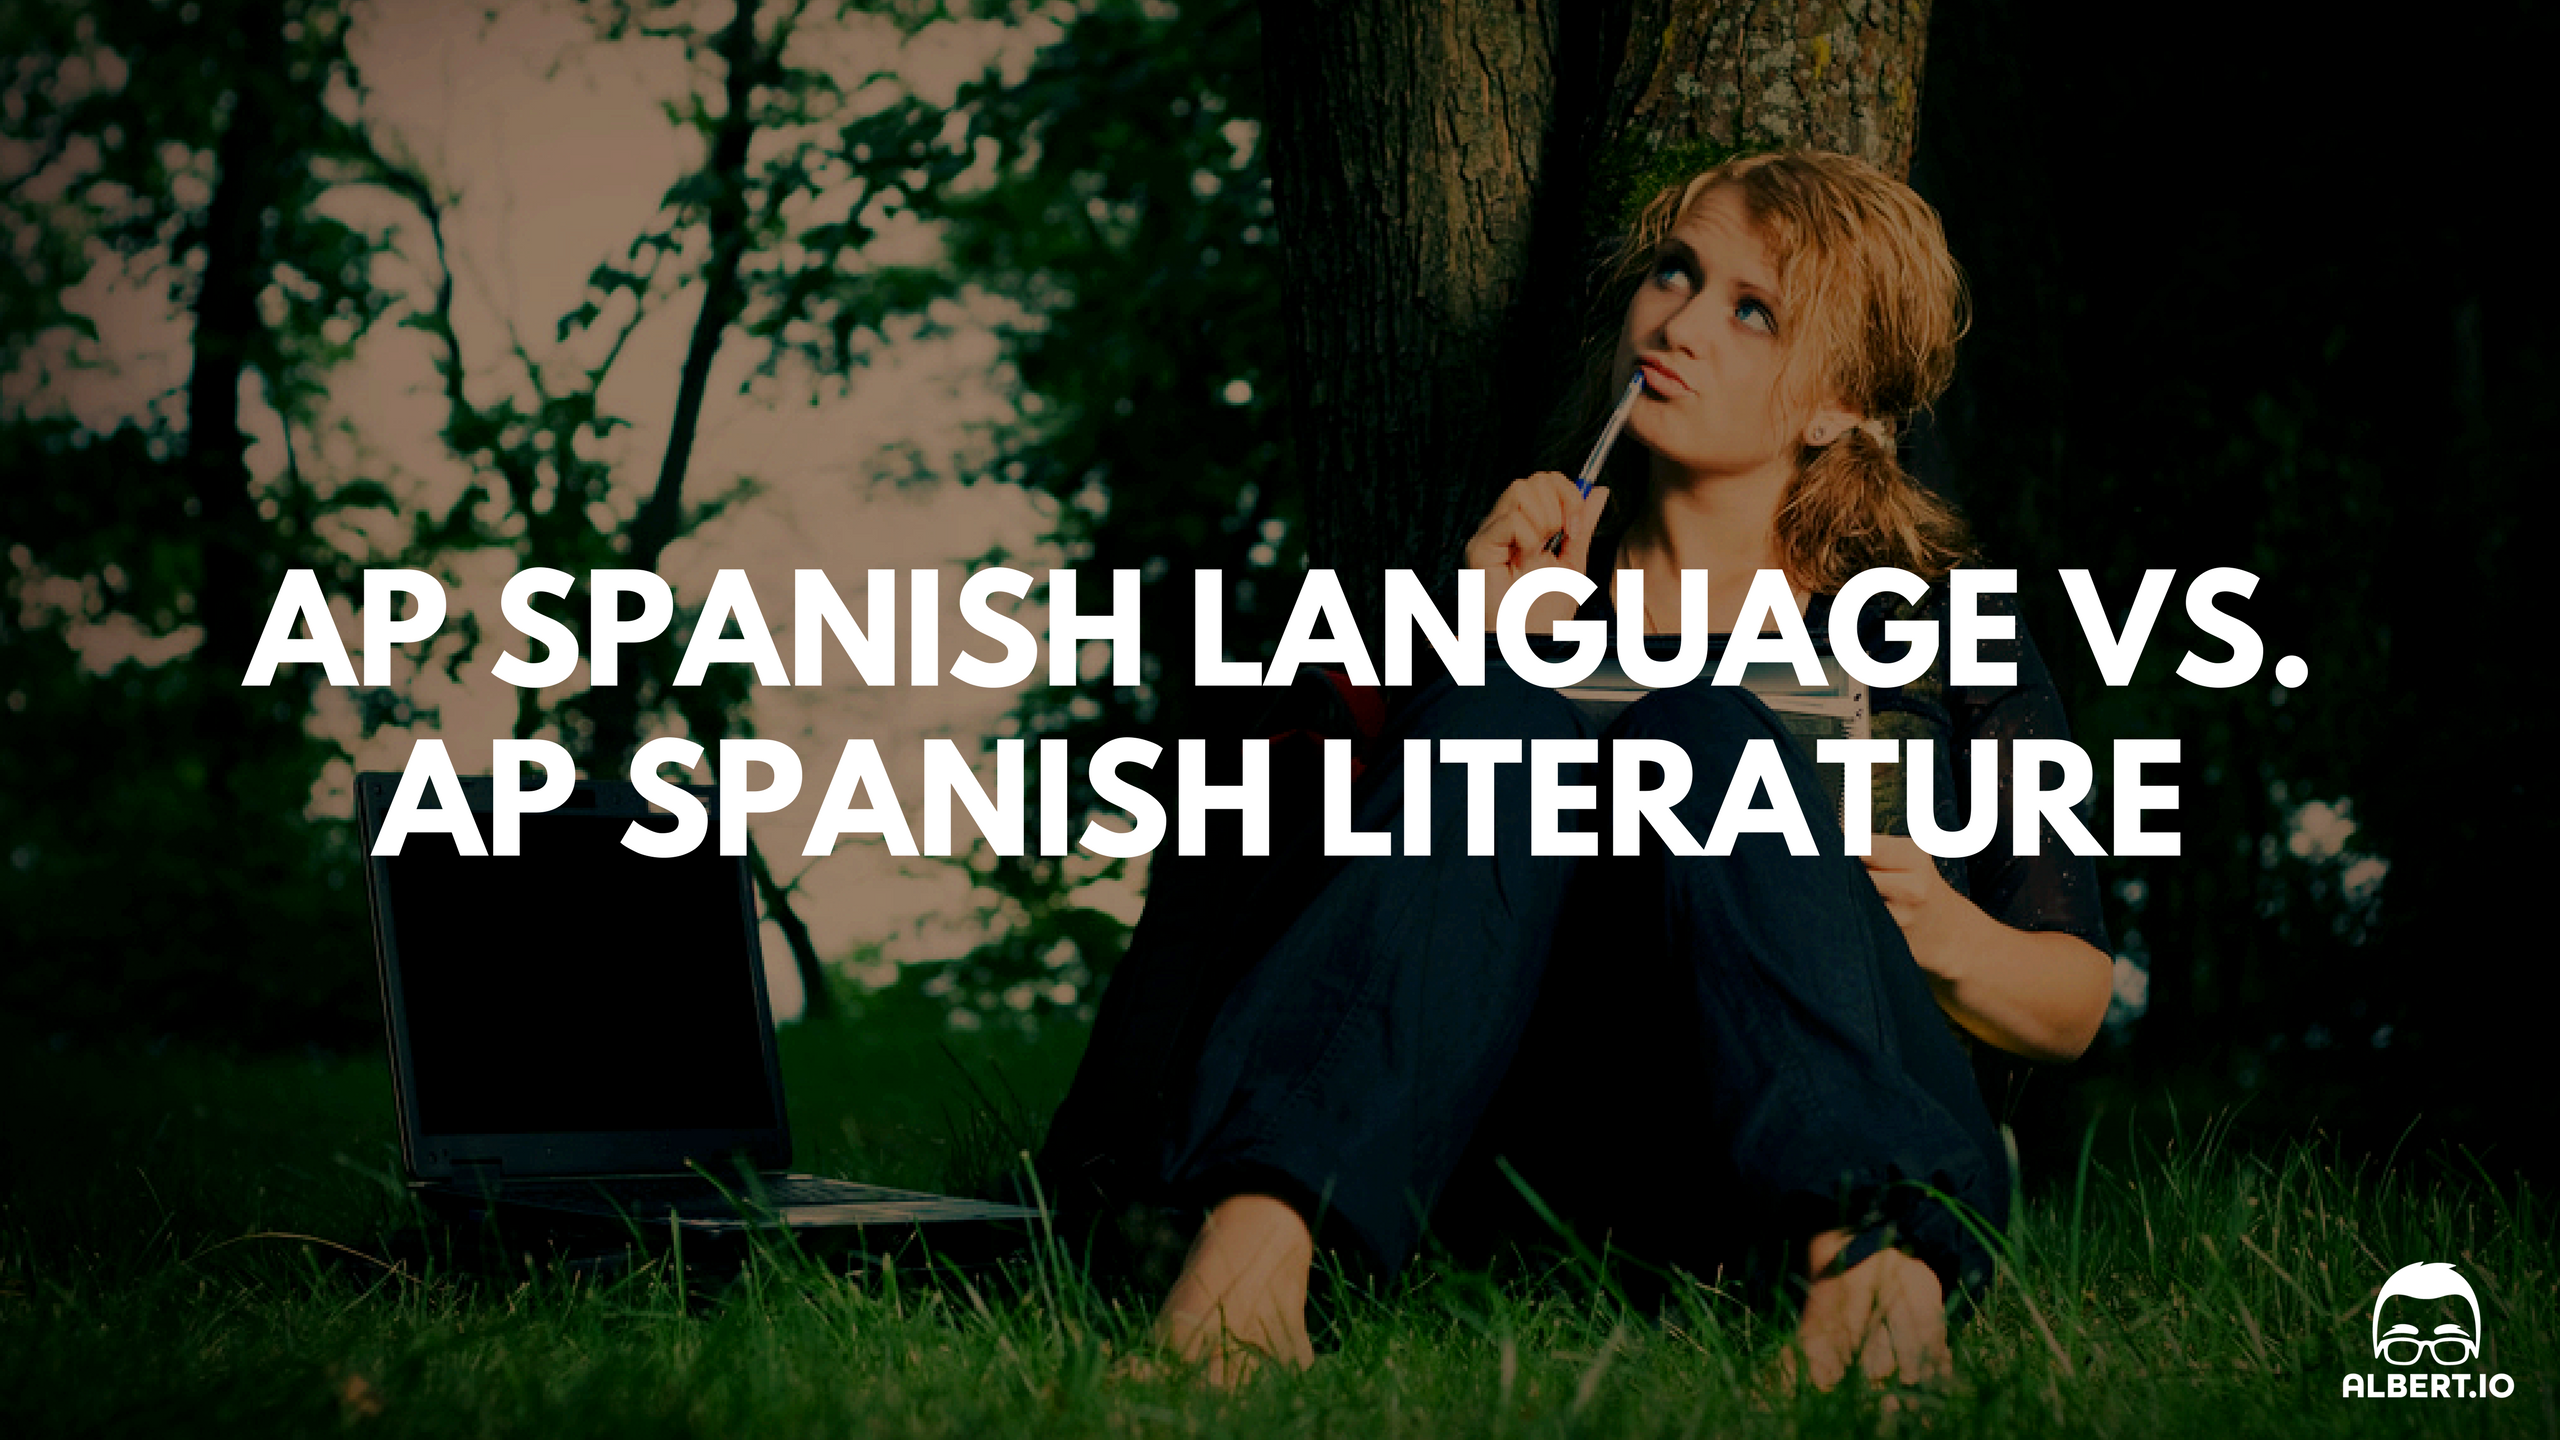 AP Spanish Language vs. AP Spanish Literature